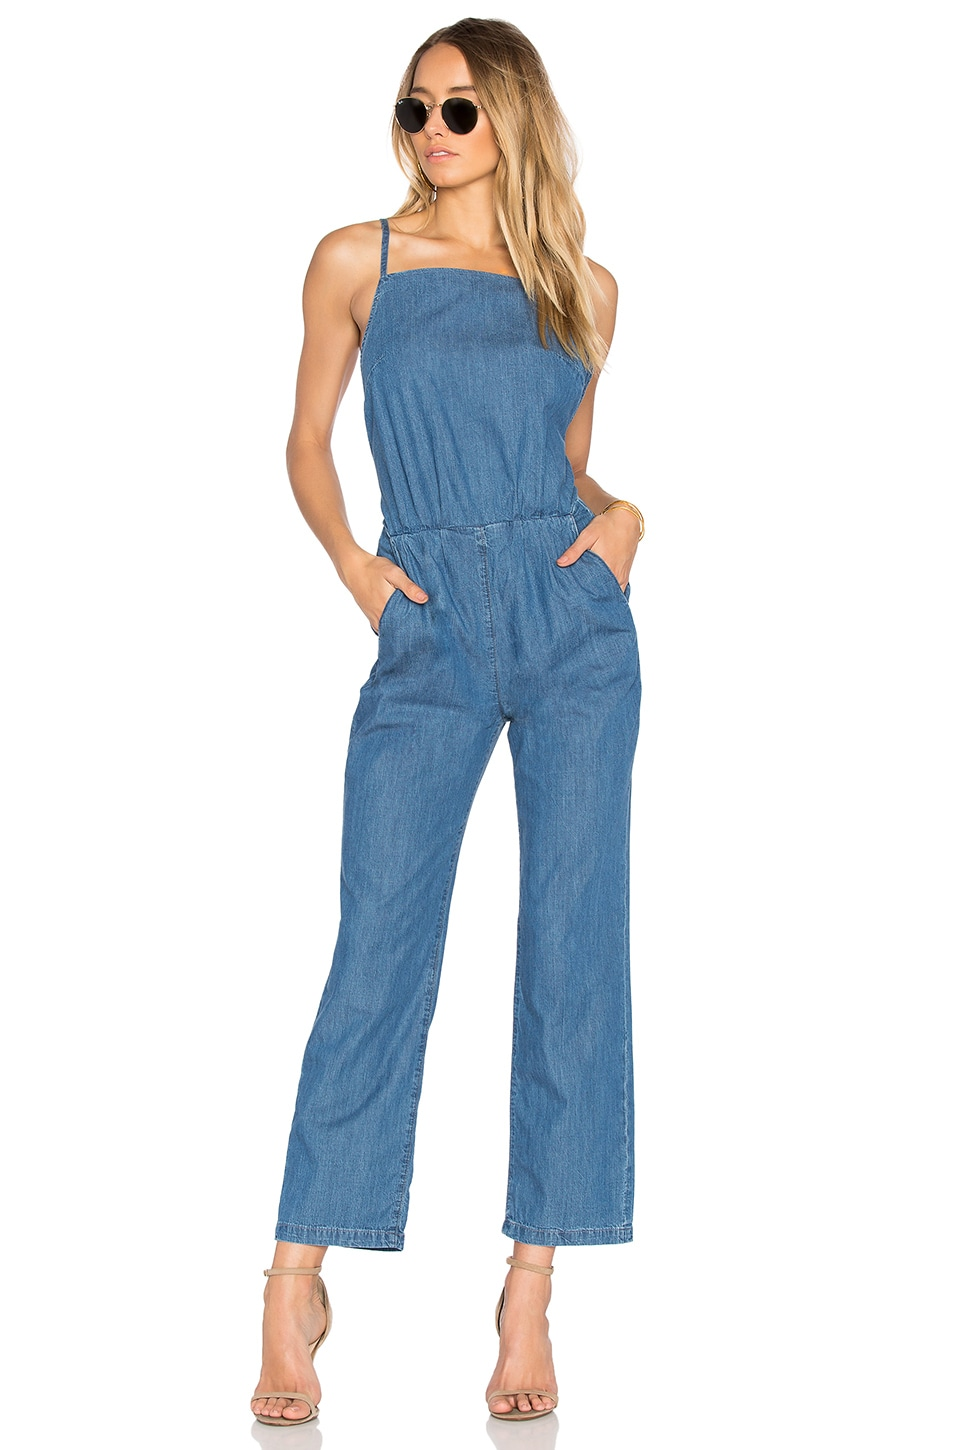 3x1 Twist Jumpsuit in Florence